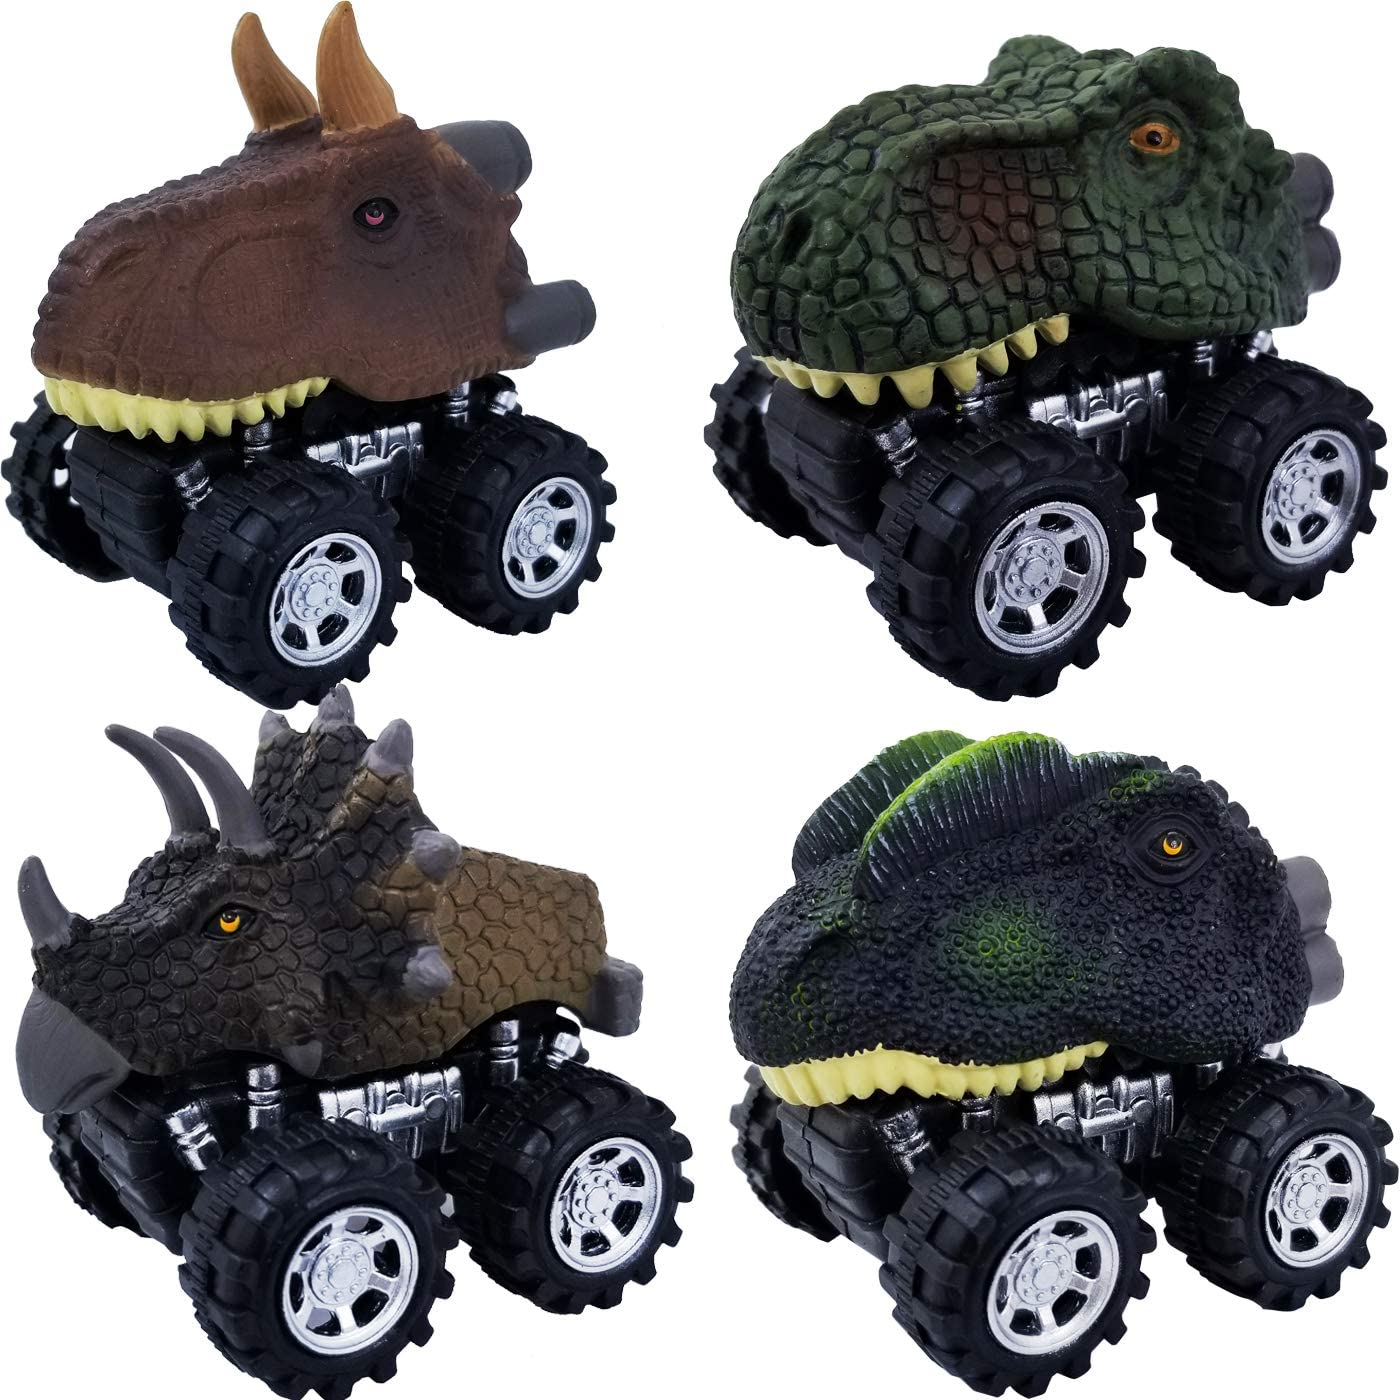 Tonmp Pull Back Dinosaur Car Toys,4 Pack Big Tire Wheel Vehicles Playset Dinosaur Toys Truck for Kids Toddlers (4 PCS)